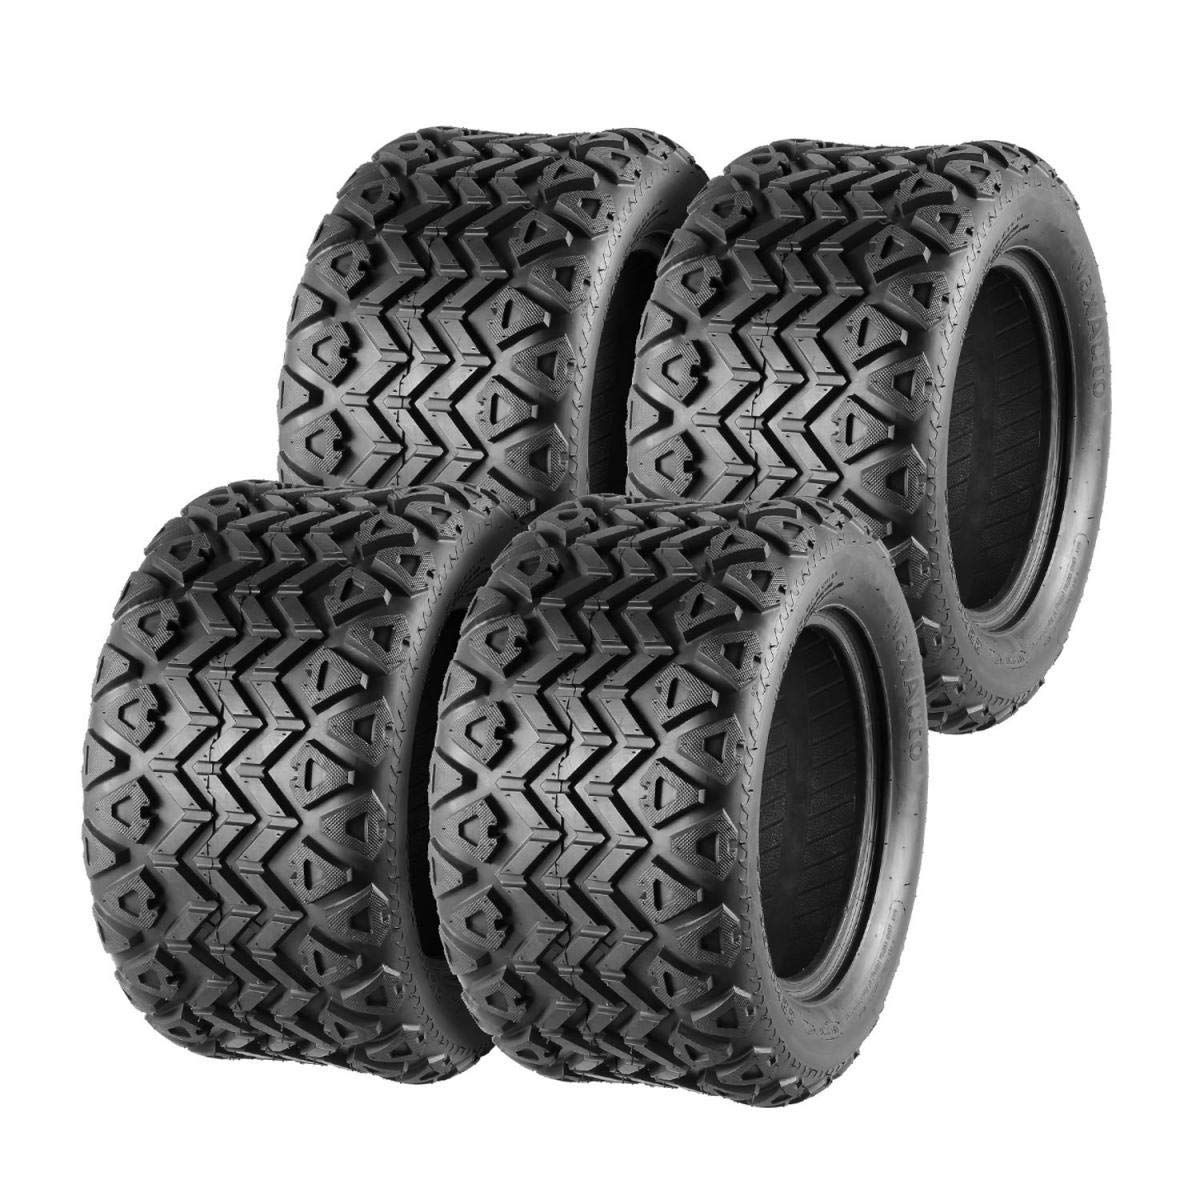 Maxauto Golf Cart Tires 22x11 12 22 11 12 22x11x12 4ply 4 Pack Details Can Be Found By Clicking On The Image Golf Cart Wheels Golf Cart Tires Golf Carts